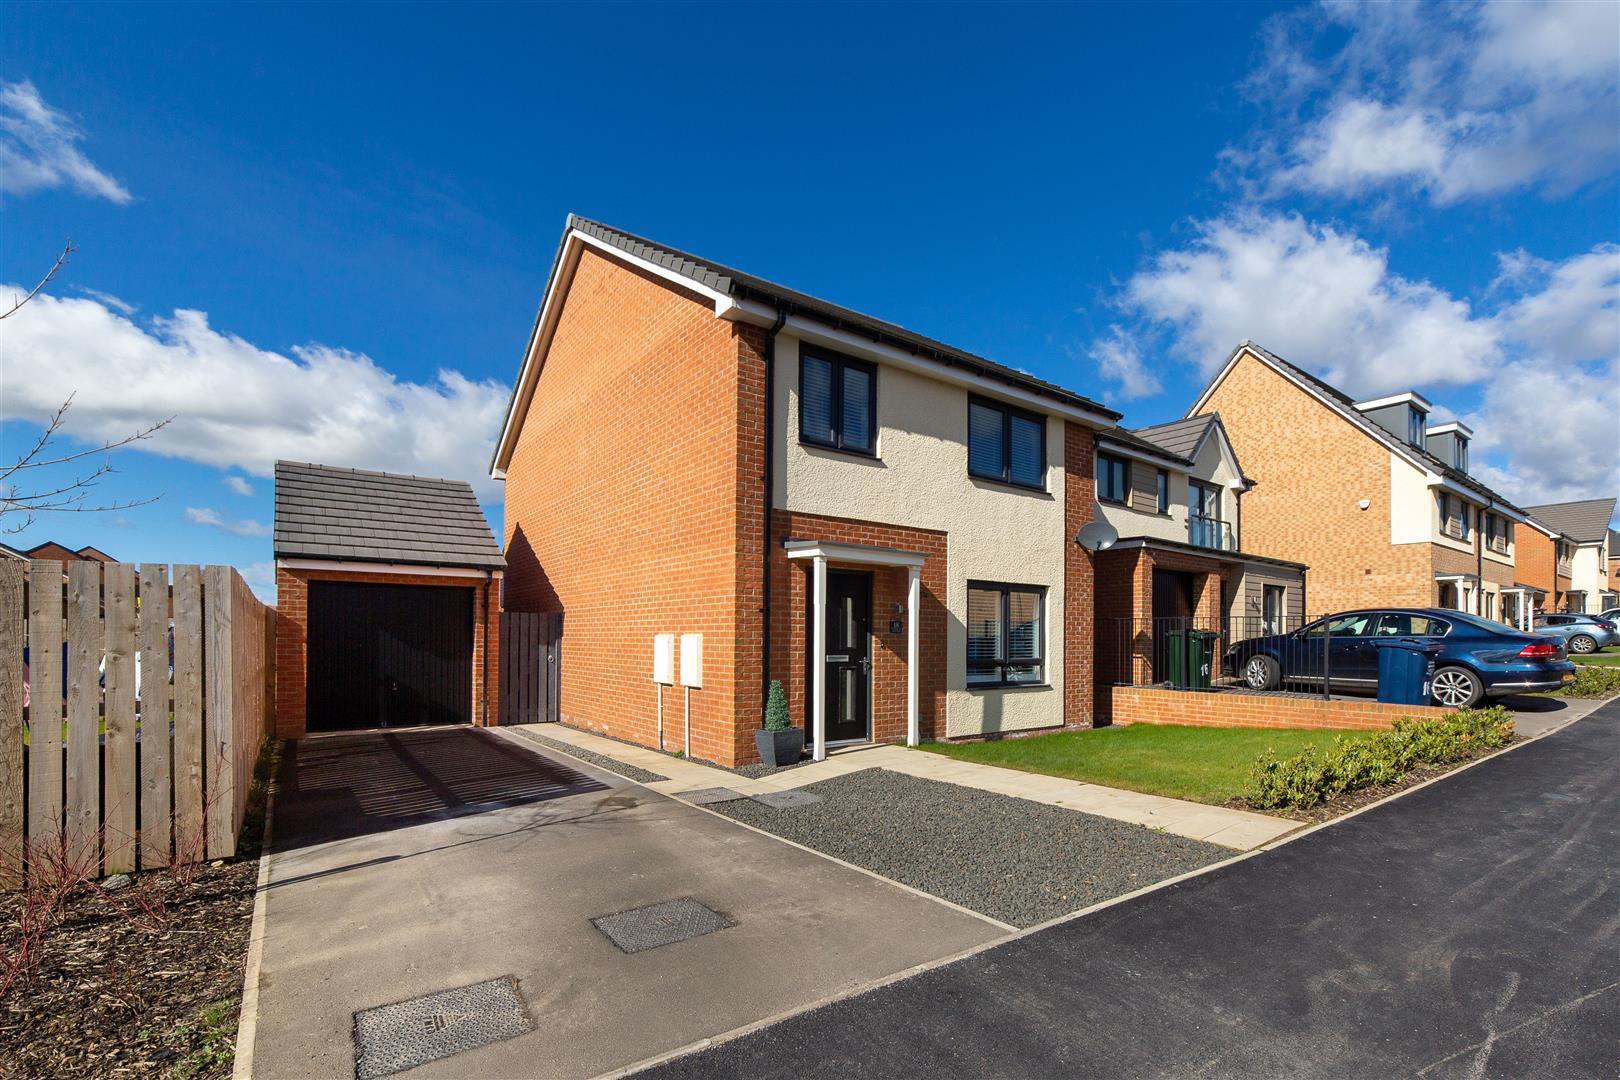 4 bed detached house for sale in Great Park, NE13 9ED, NE13